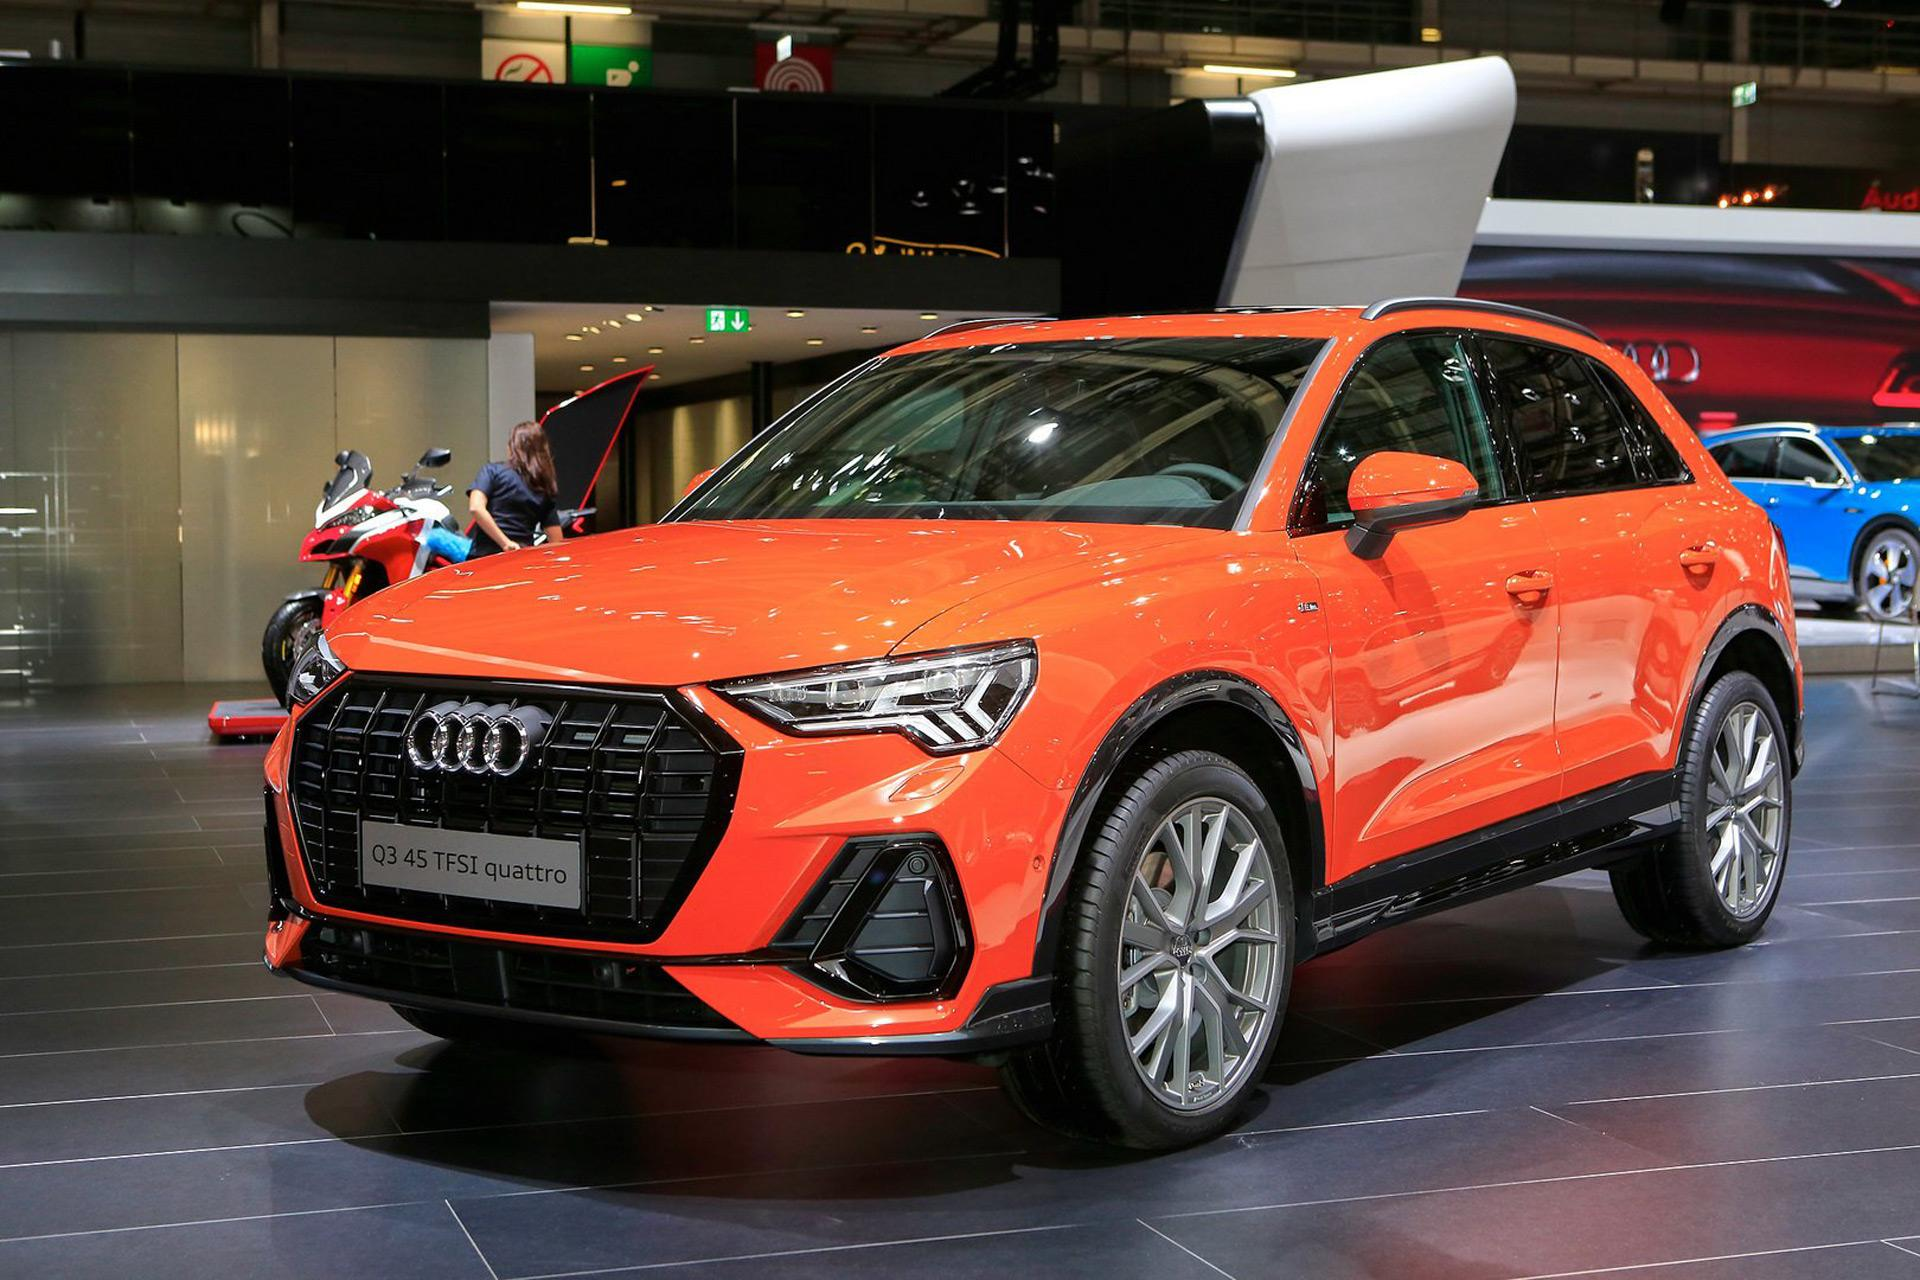 2019 Audi Q3 bows with sporty look, high